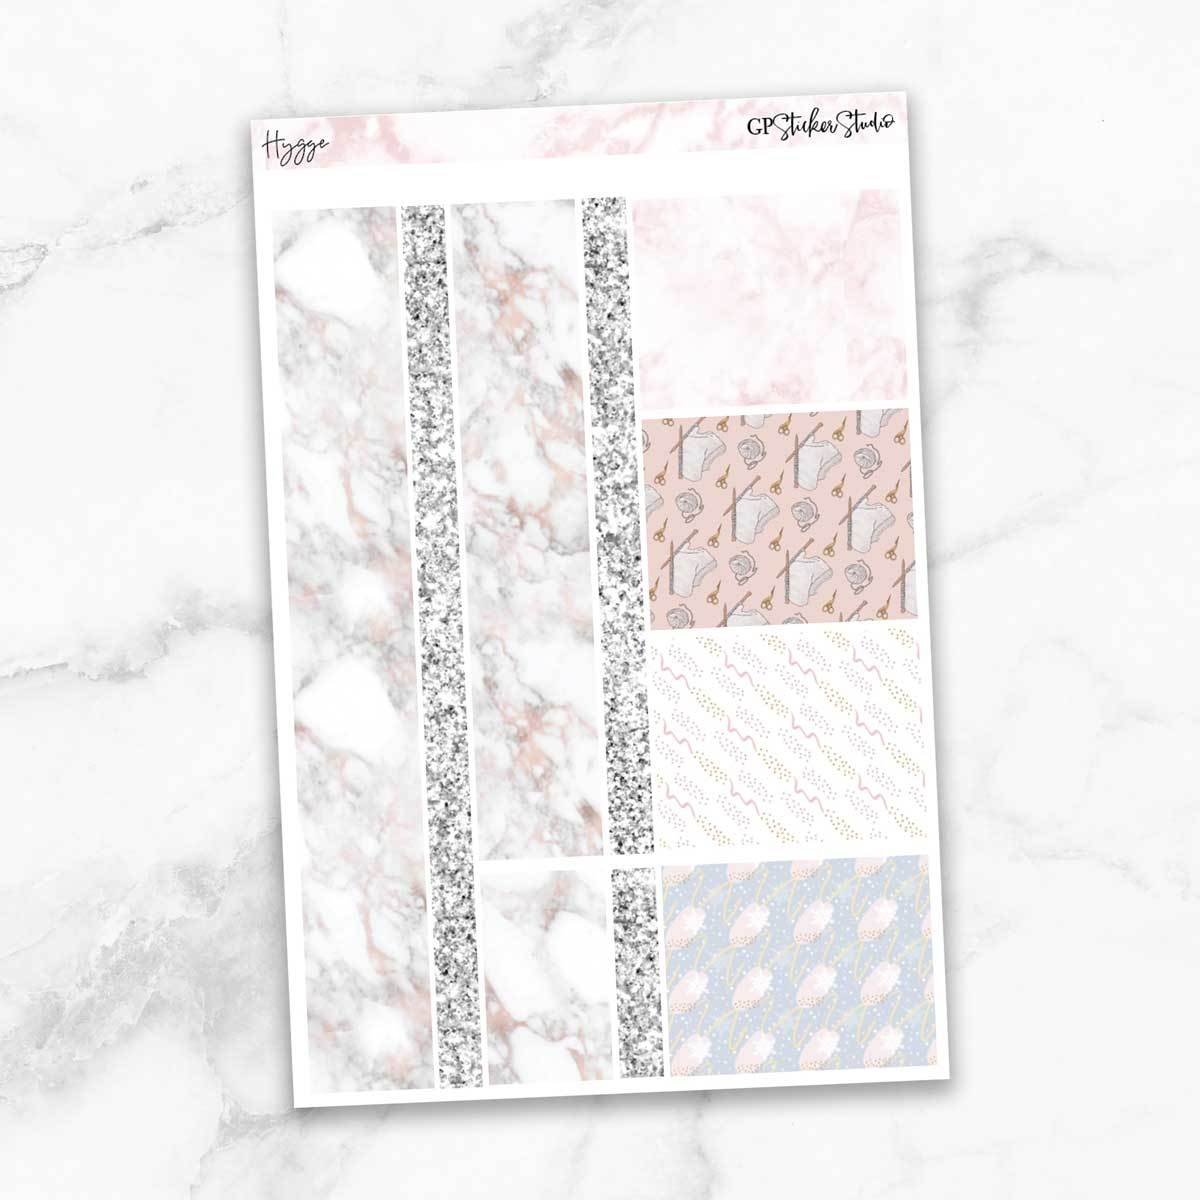 HYGGE Washi Sheet Stickers-The GP Studio